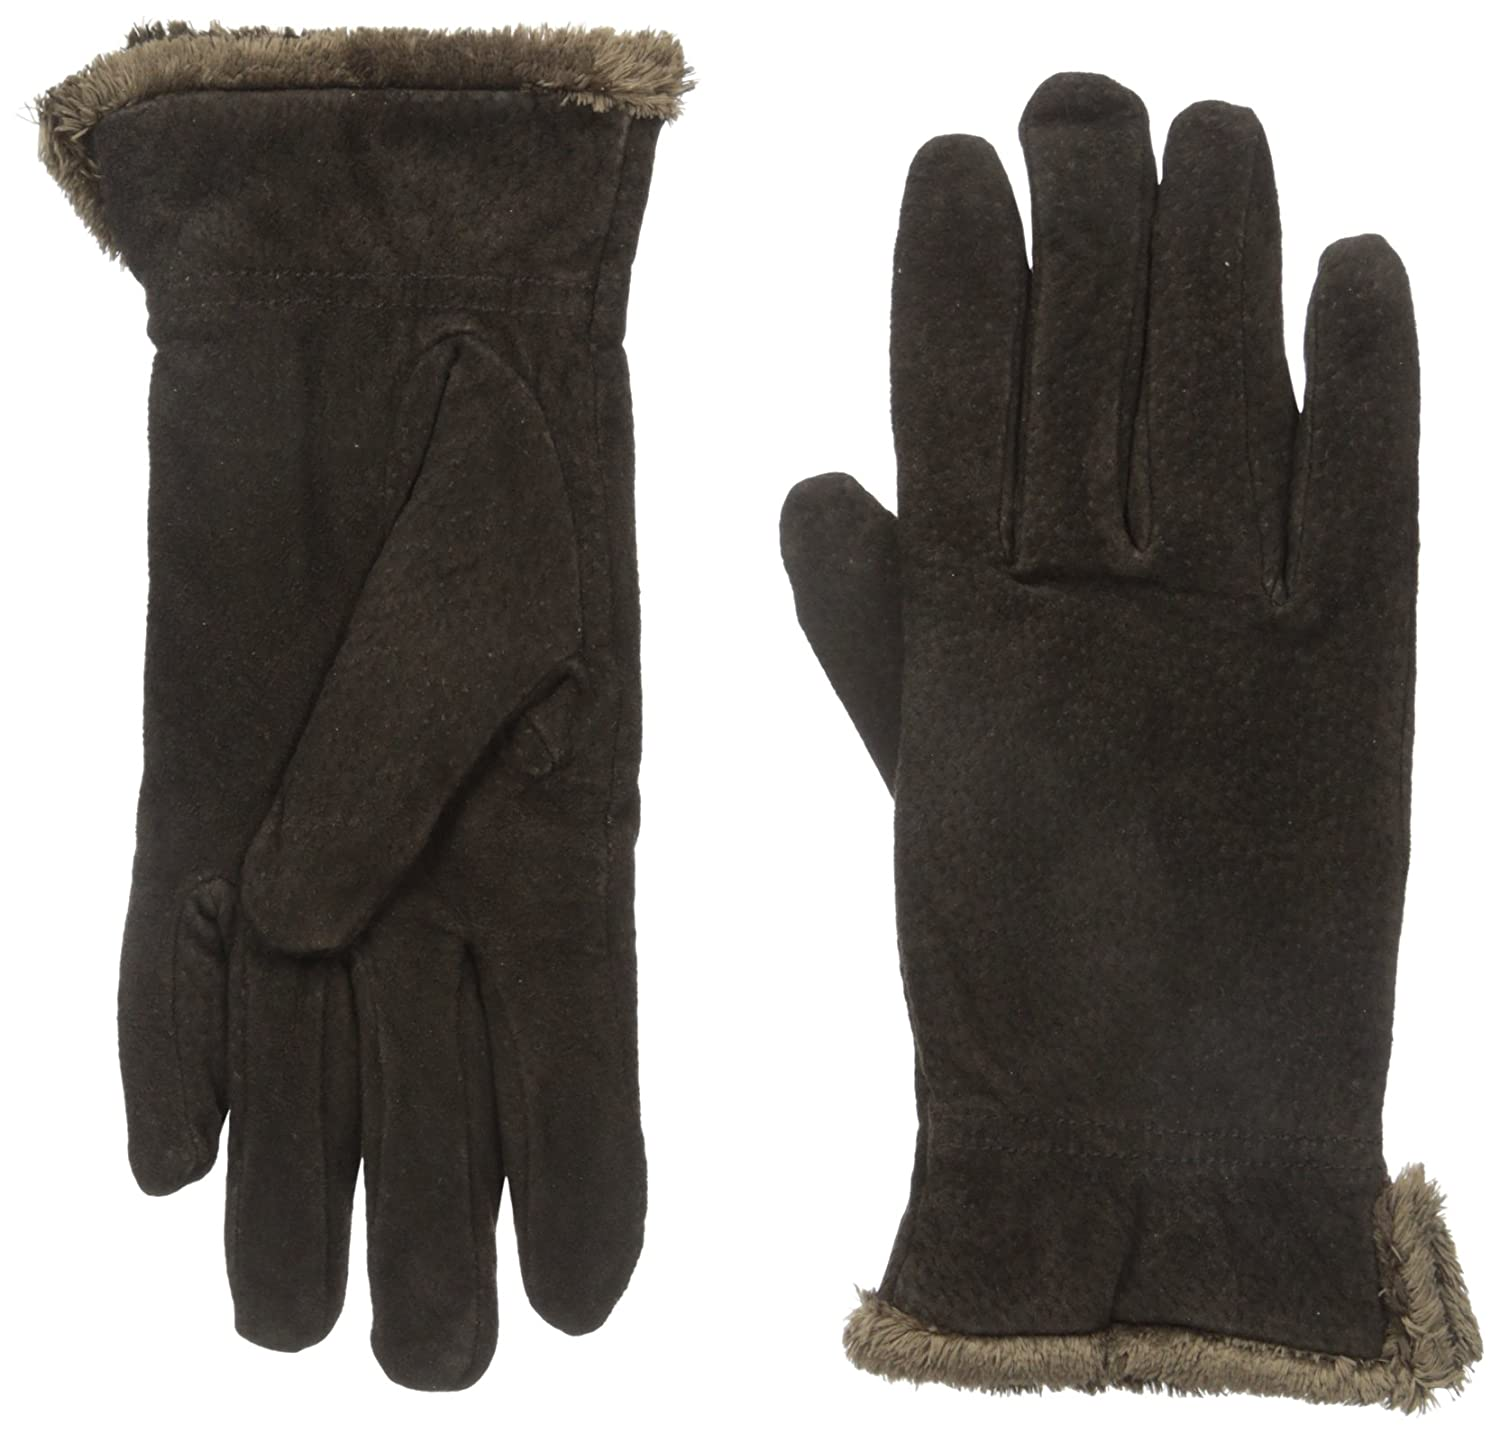 Isotoner Women's Suede Gloves with Gathered Wrist Totes Women's Accessories 40036